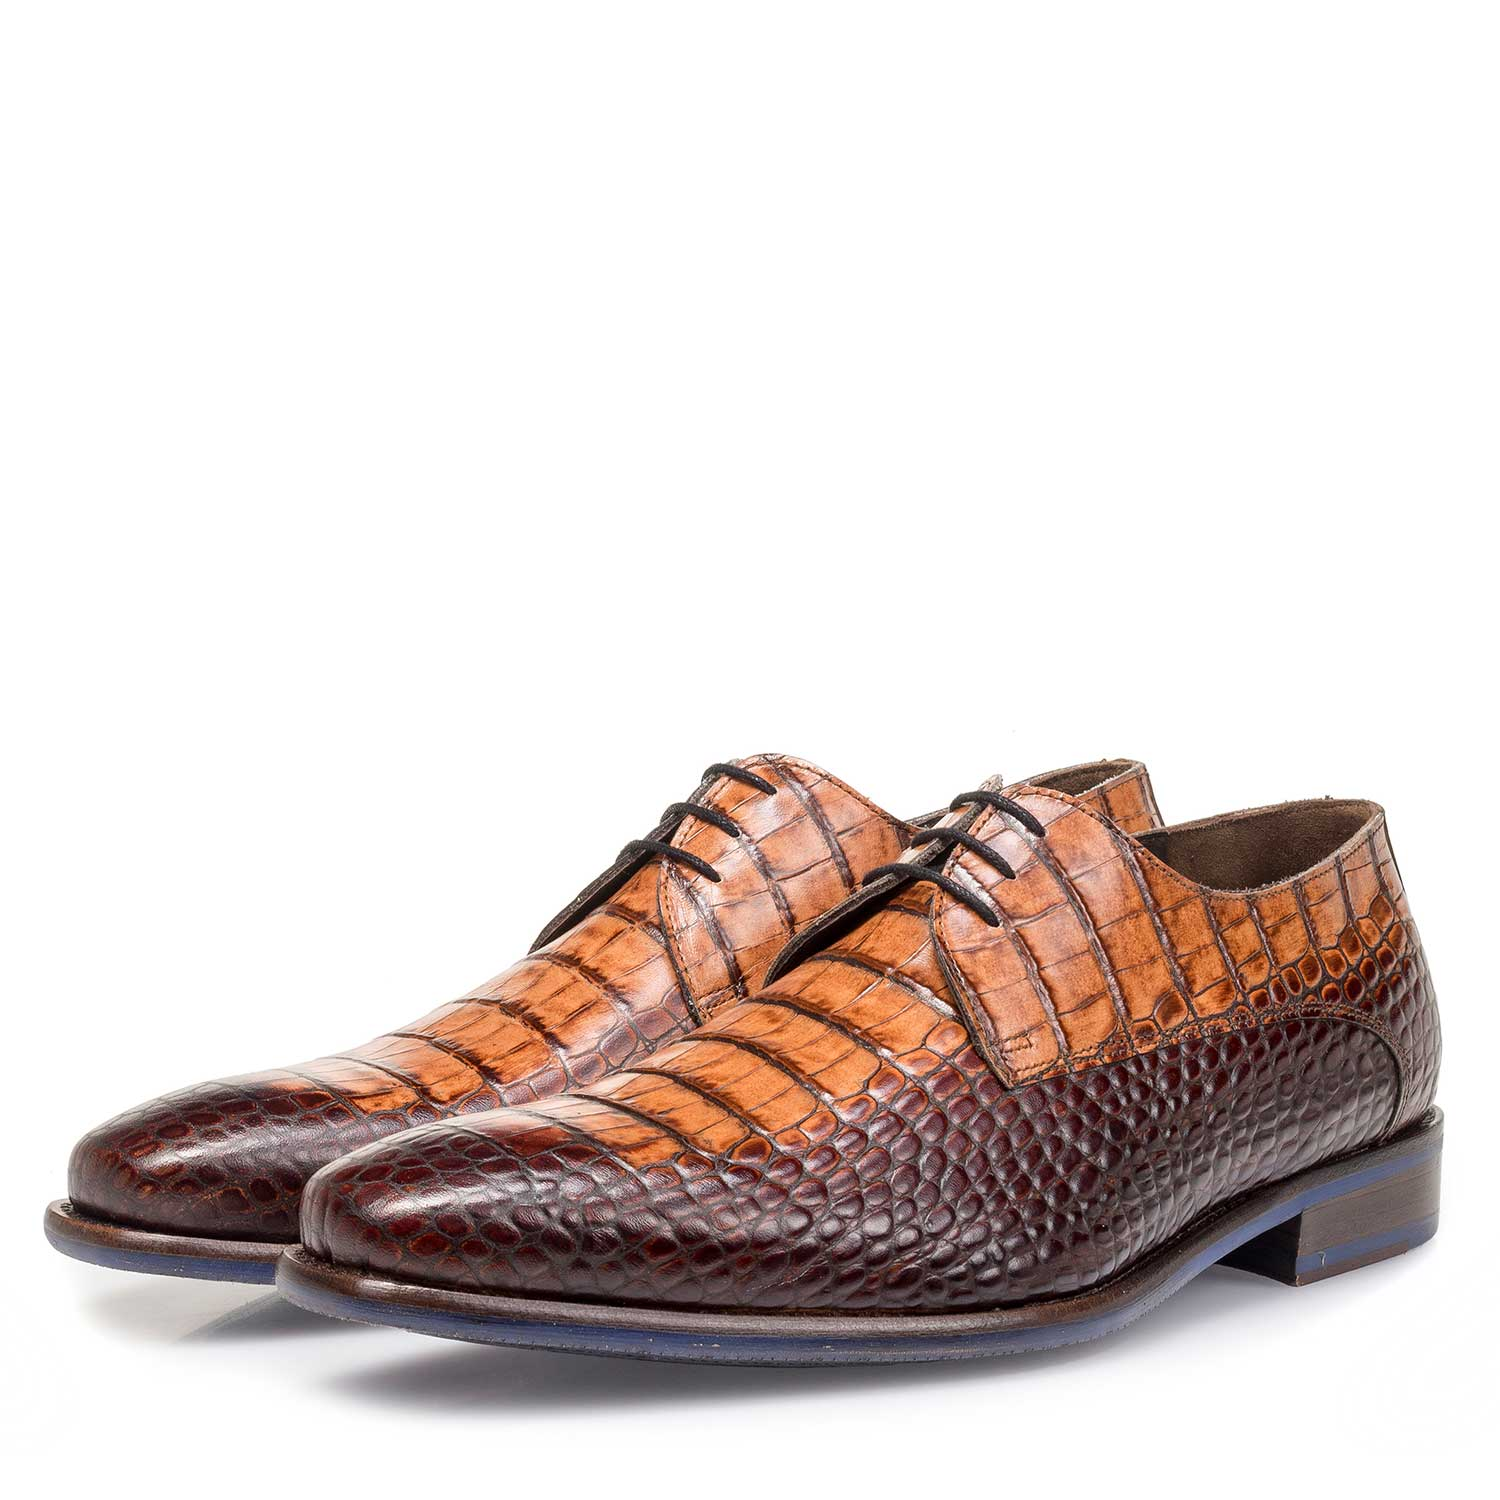 14204/11 - Brown calf leather lace shoe